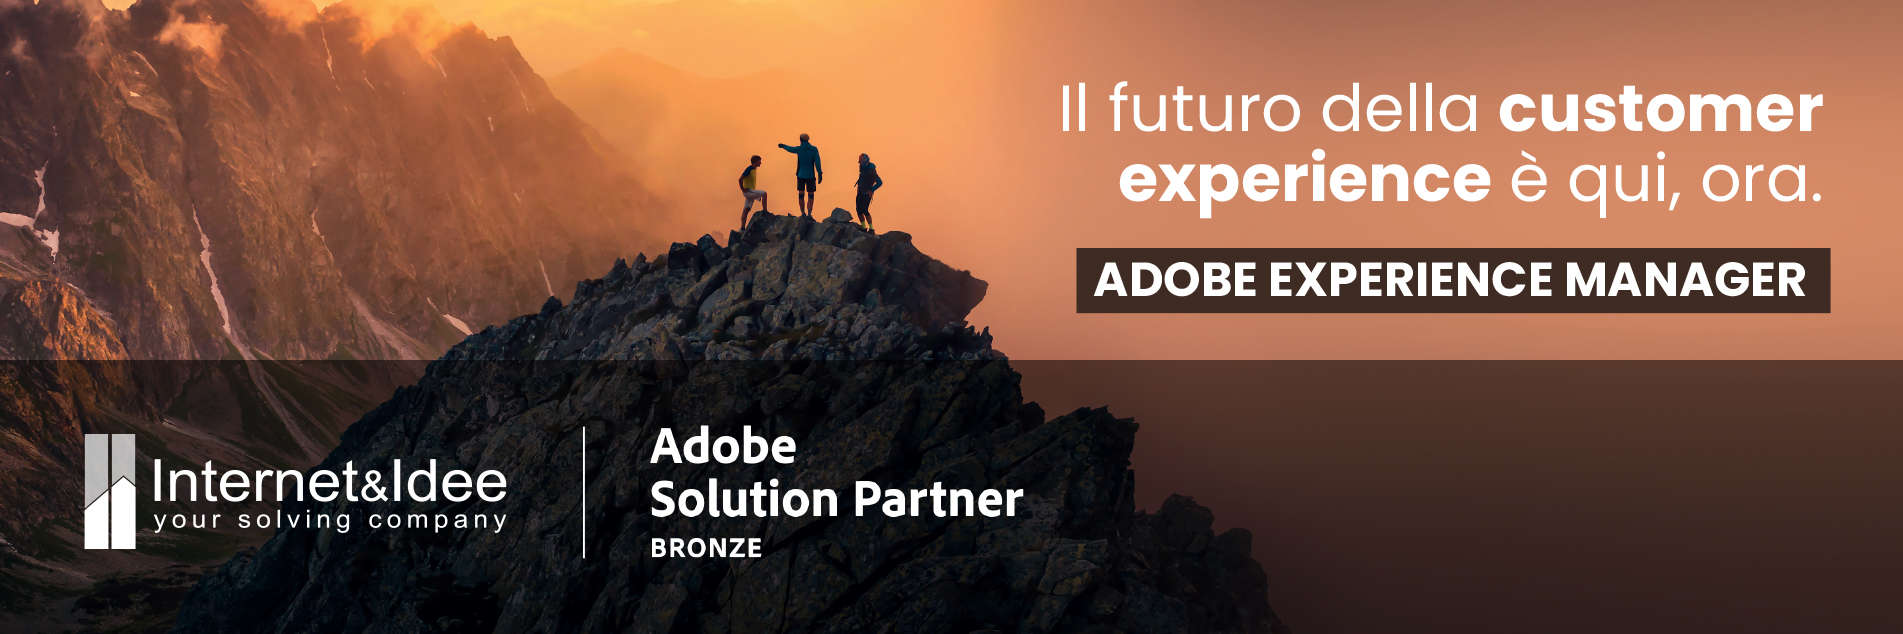 Adobe Experience Manager: the future of customer experience is now